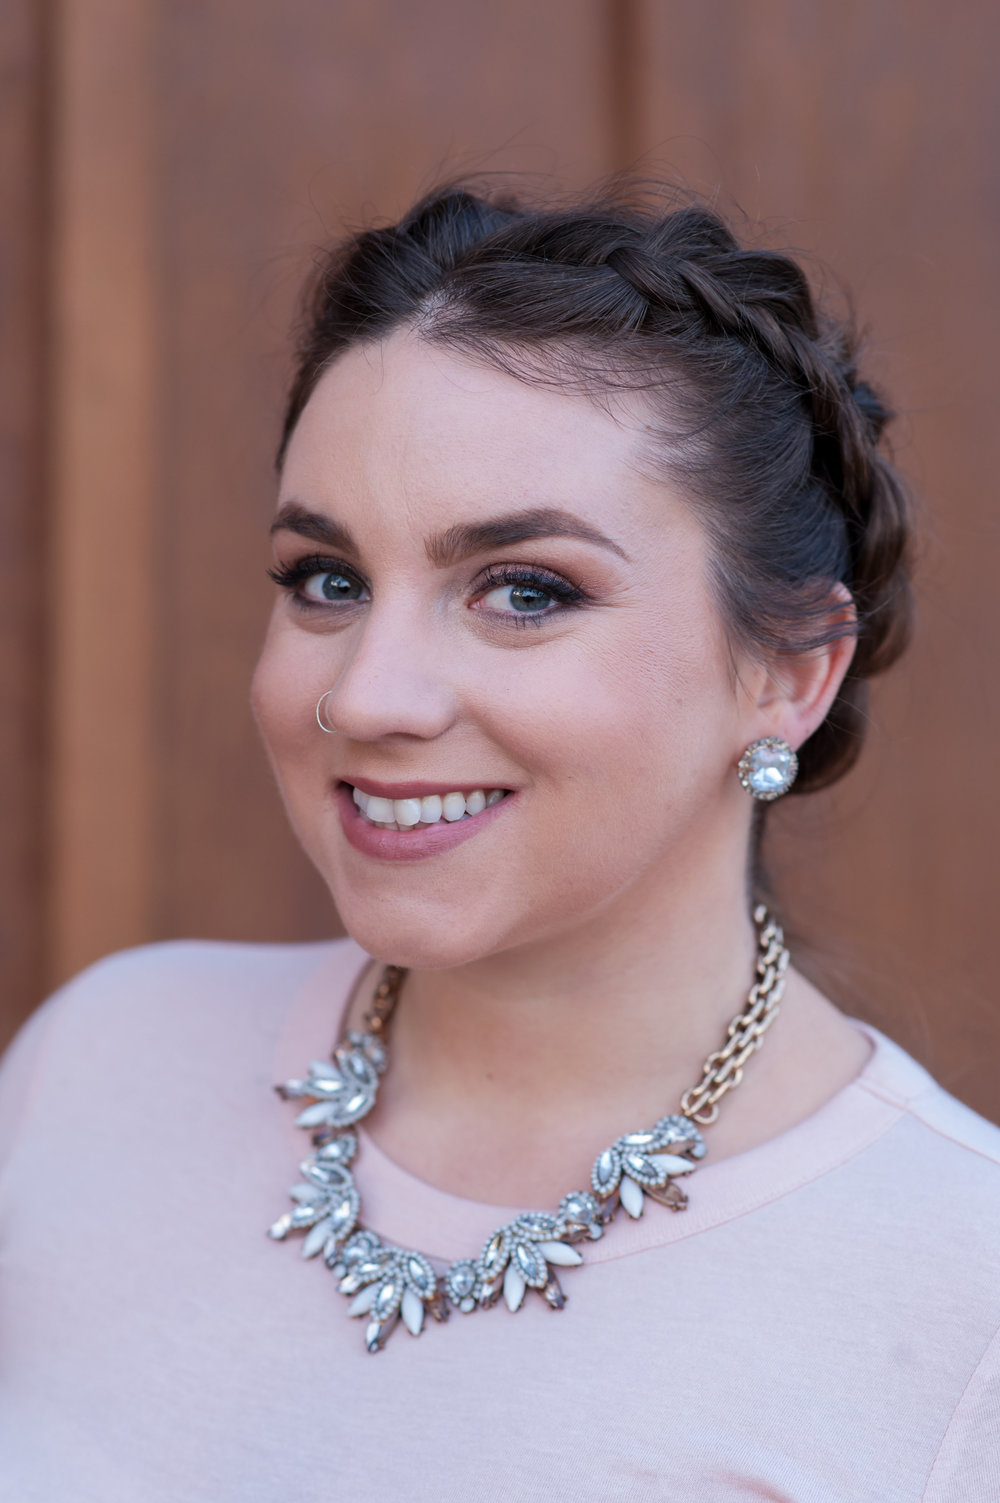 bridesmaid at fitz place in san martin wearing rose toned soft romantic glam glowing makeup by kim baker beauty san jose california makeup artist